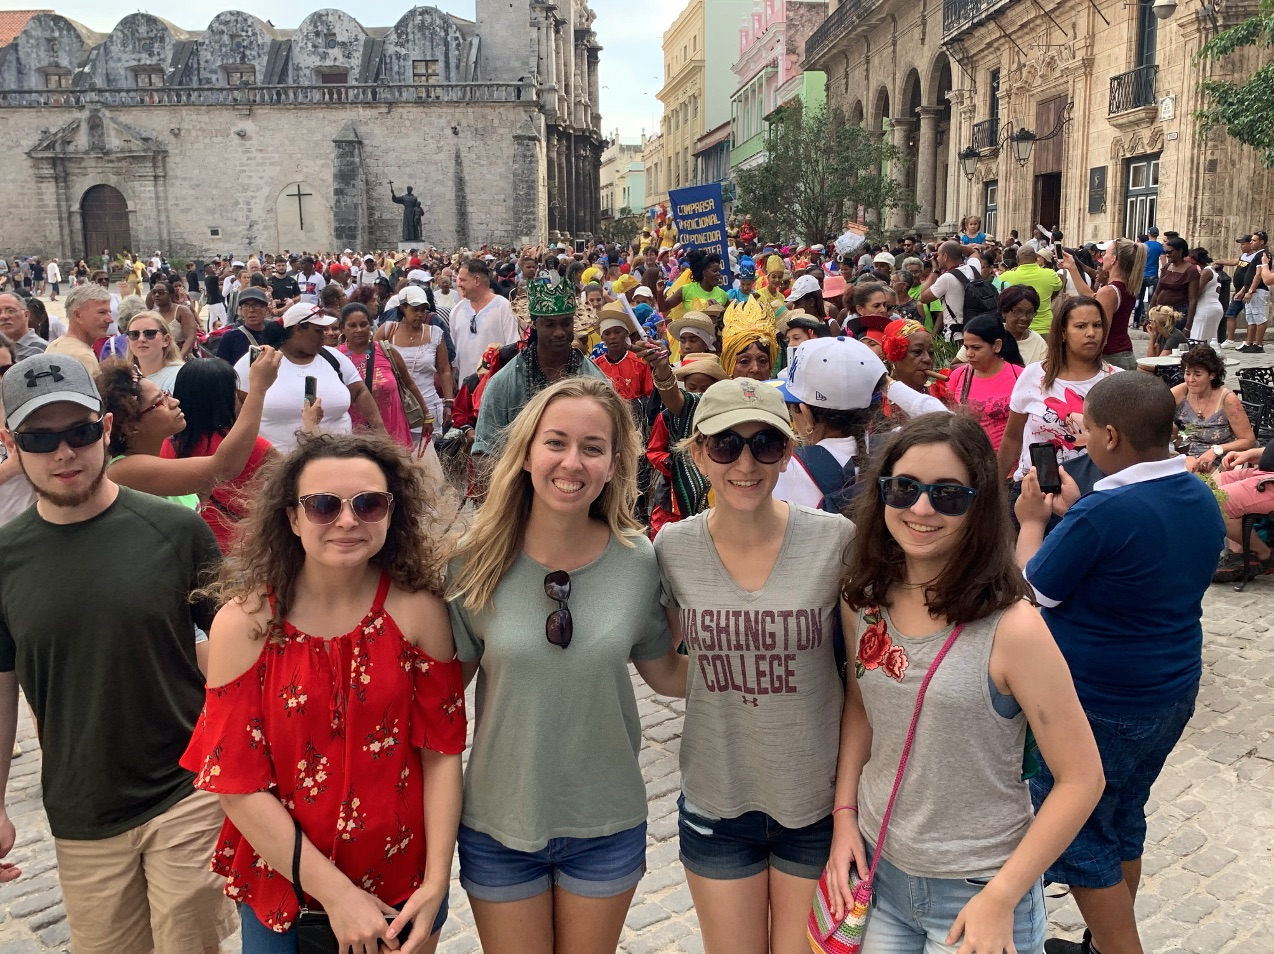 Cuba - Plaza with students